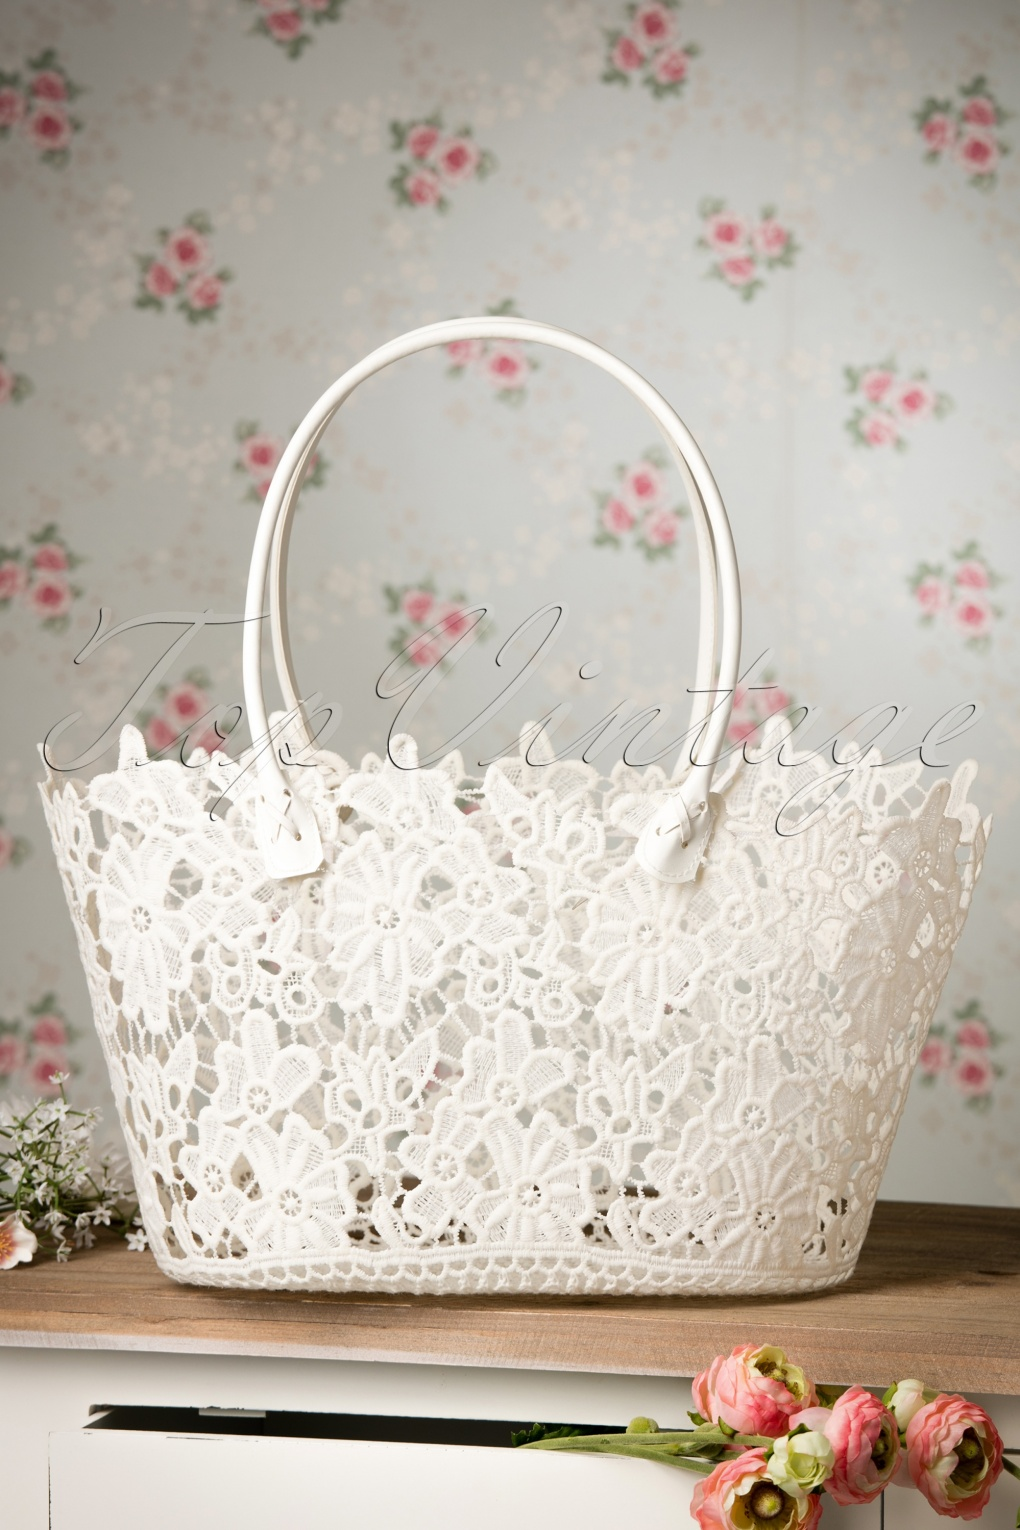 Retro Handbags, Purses, Wallets, Bags 60s Romantic Shopper in White £17.31 AT vintagedancer.com